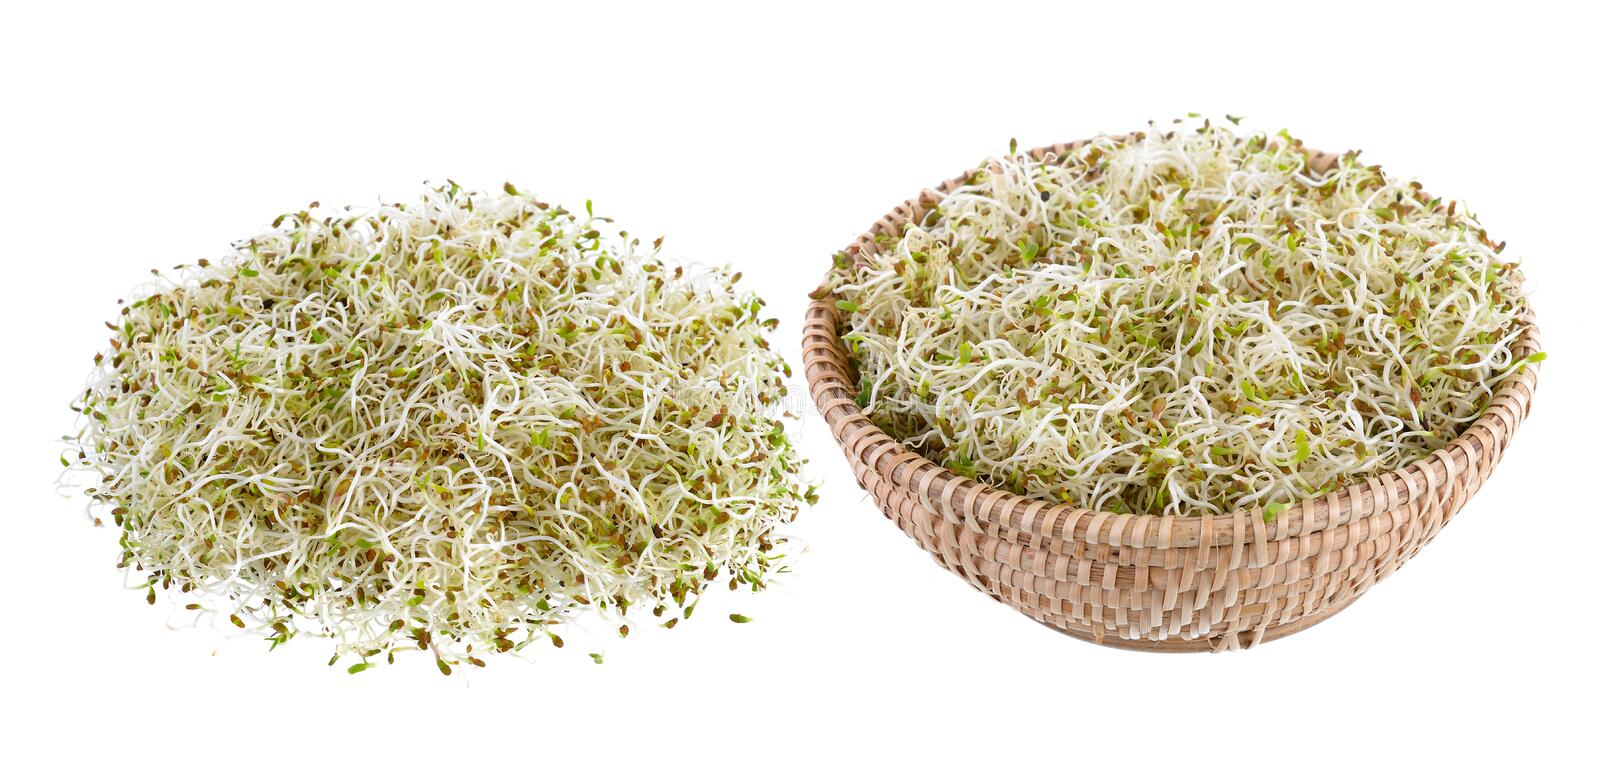 Sprouted alfalfa seeds. On a white background stock image